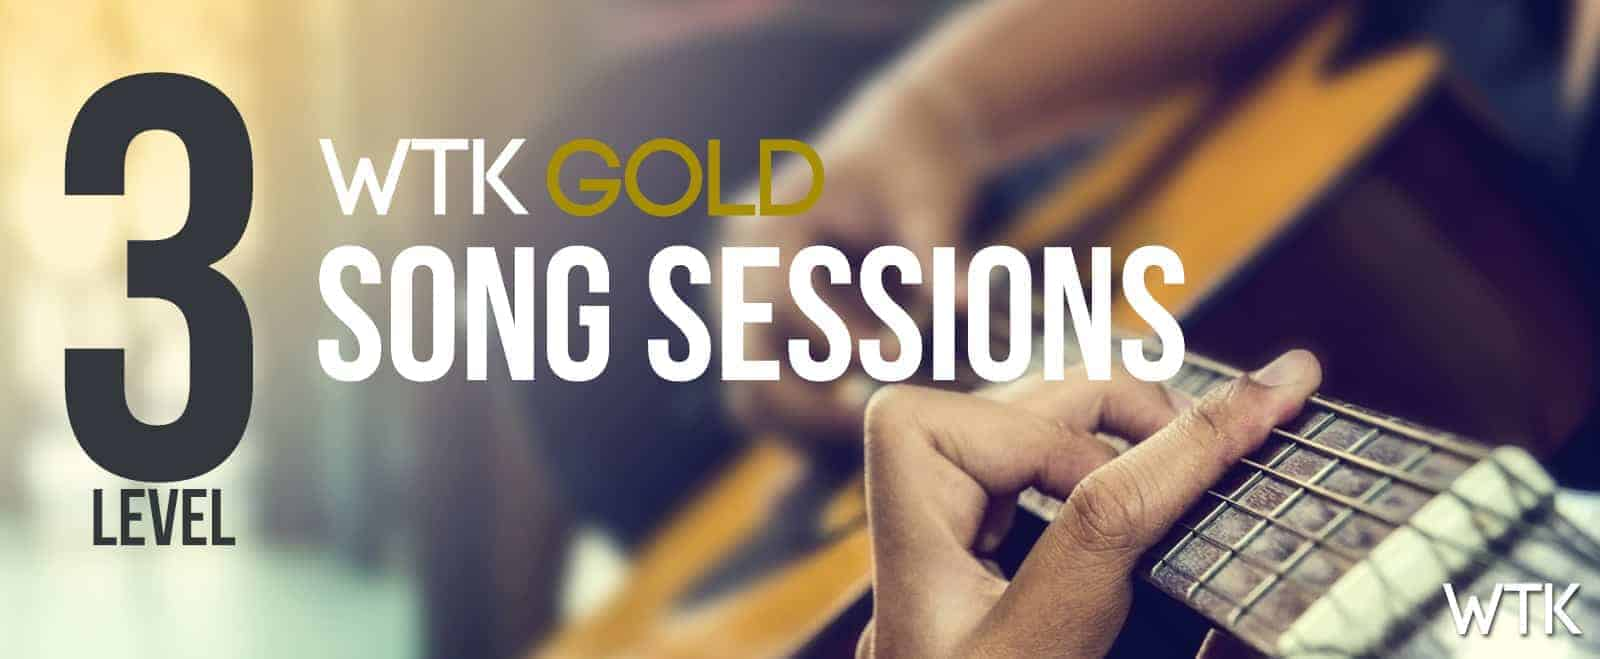 WTK GOLD Song Sessions Level 3